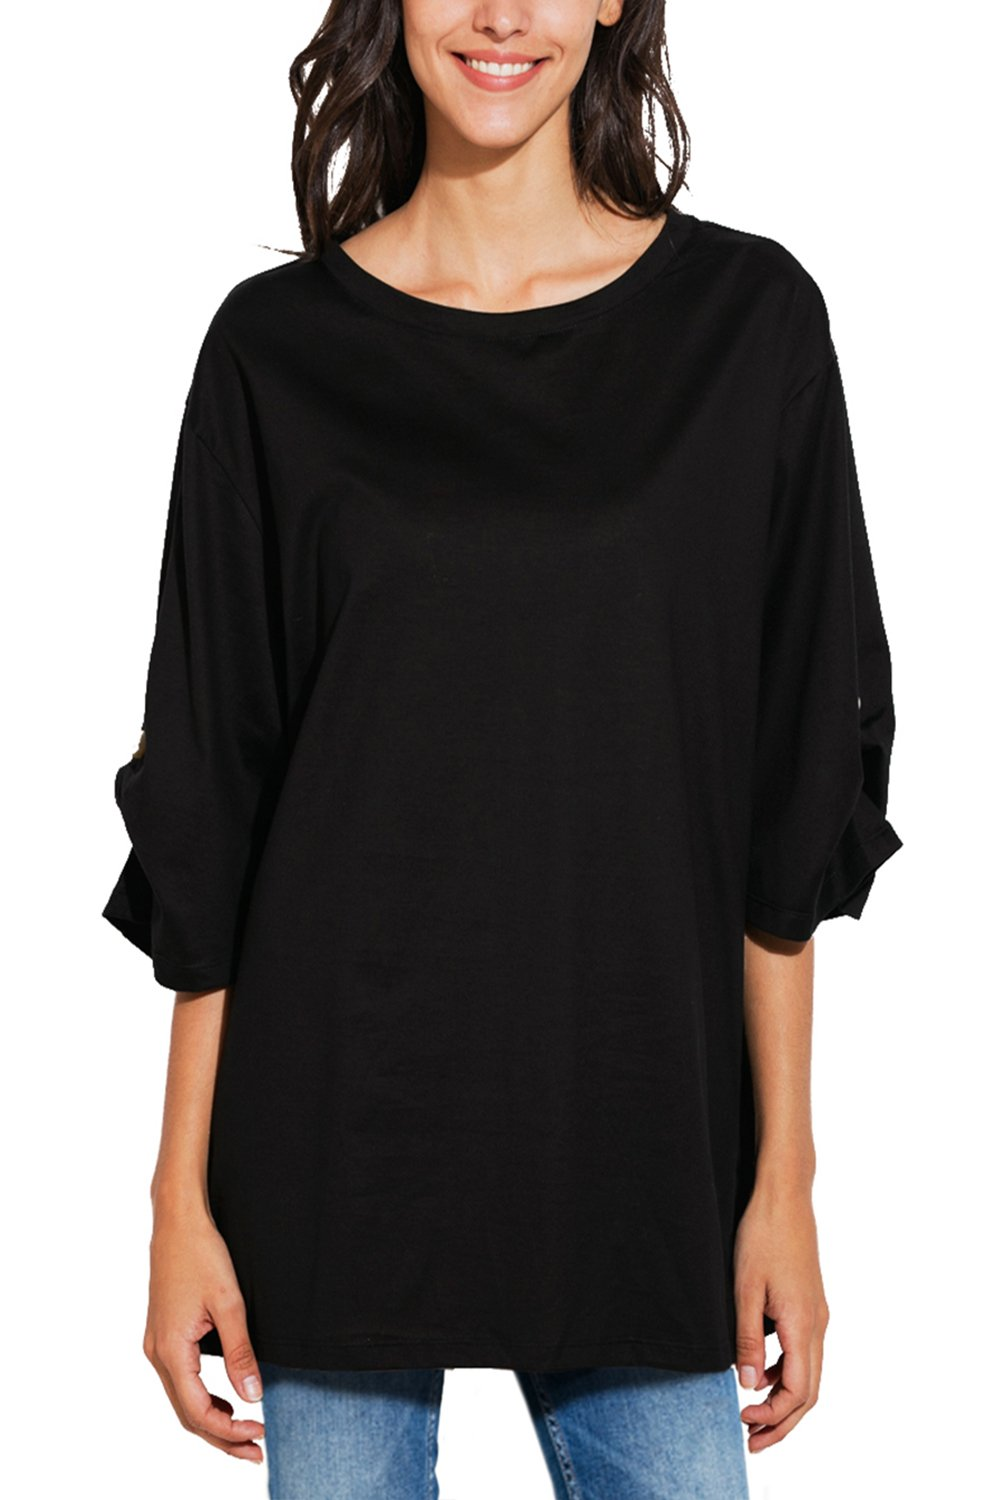 Women's Summer Basic 3/4 Sleeve Round Neck Casual Loose Fit Plus Size T-Shirt Cotton Blouse Tops (S-XL)